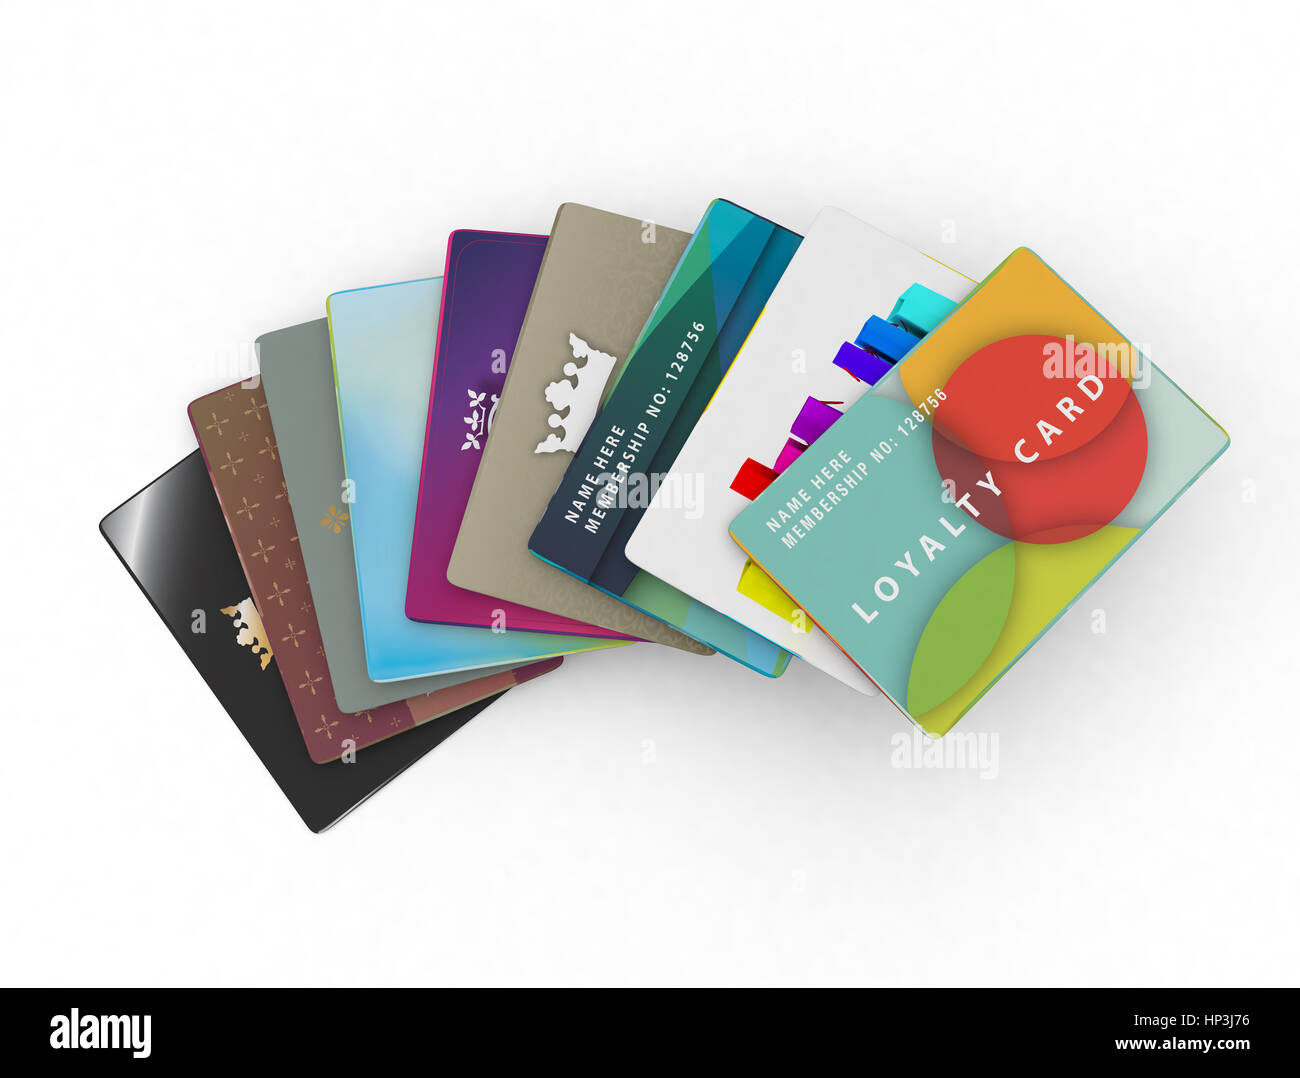 Loyalty Cards Stock Photos & Loyalty Cards Stock Images - Alamy